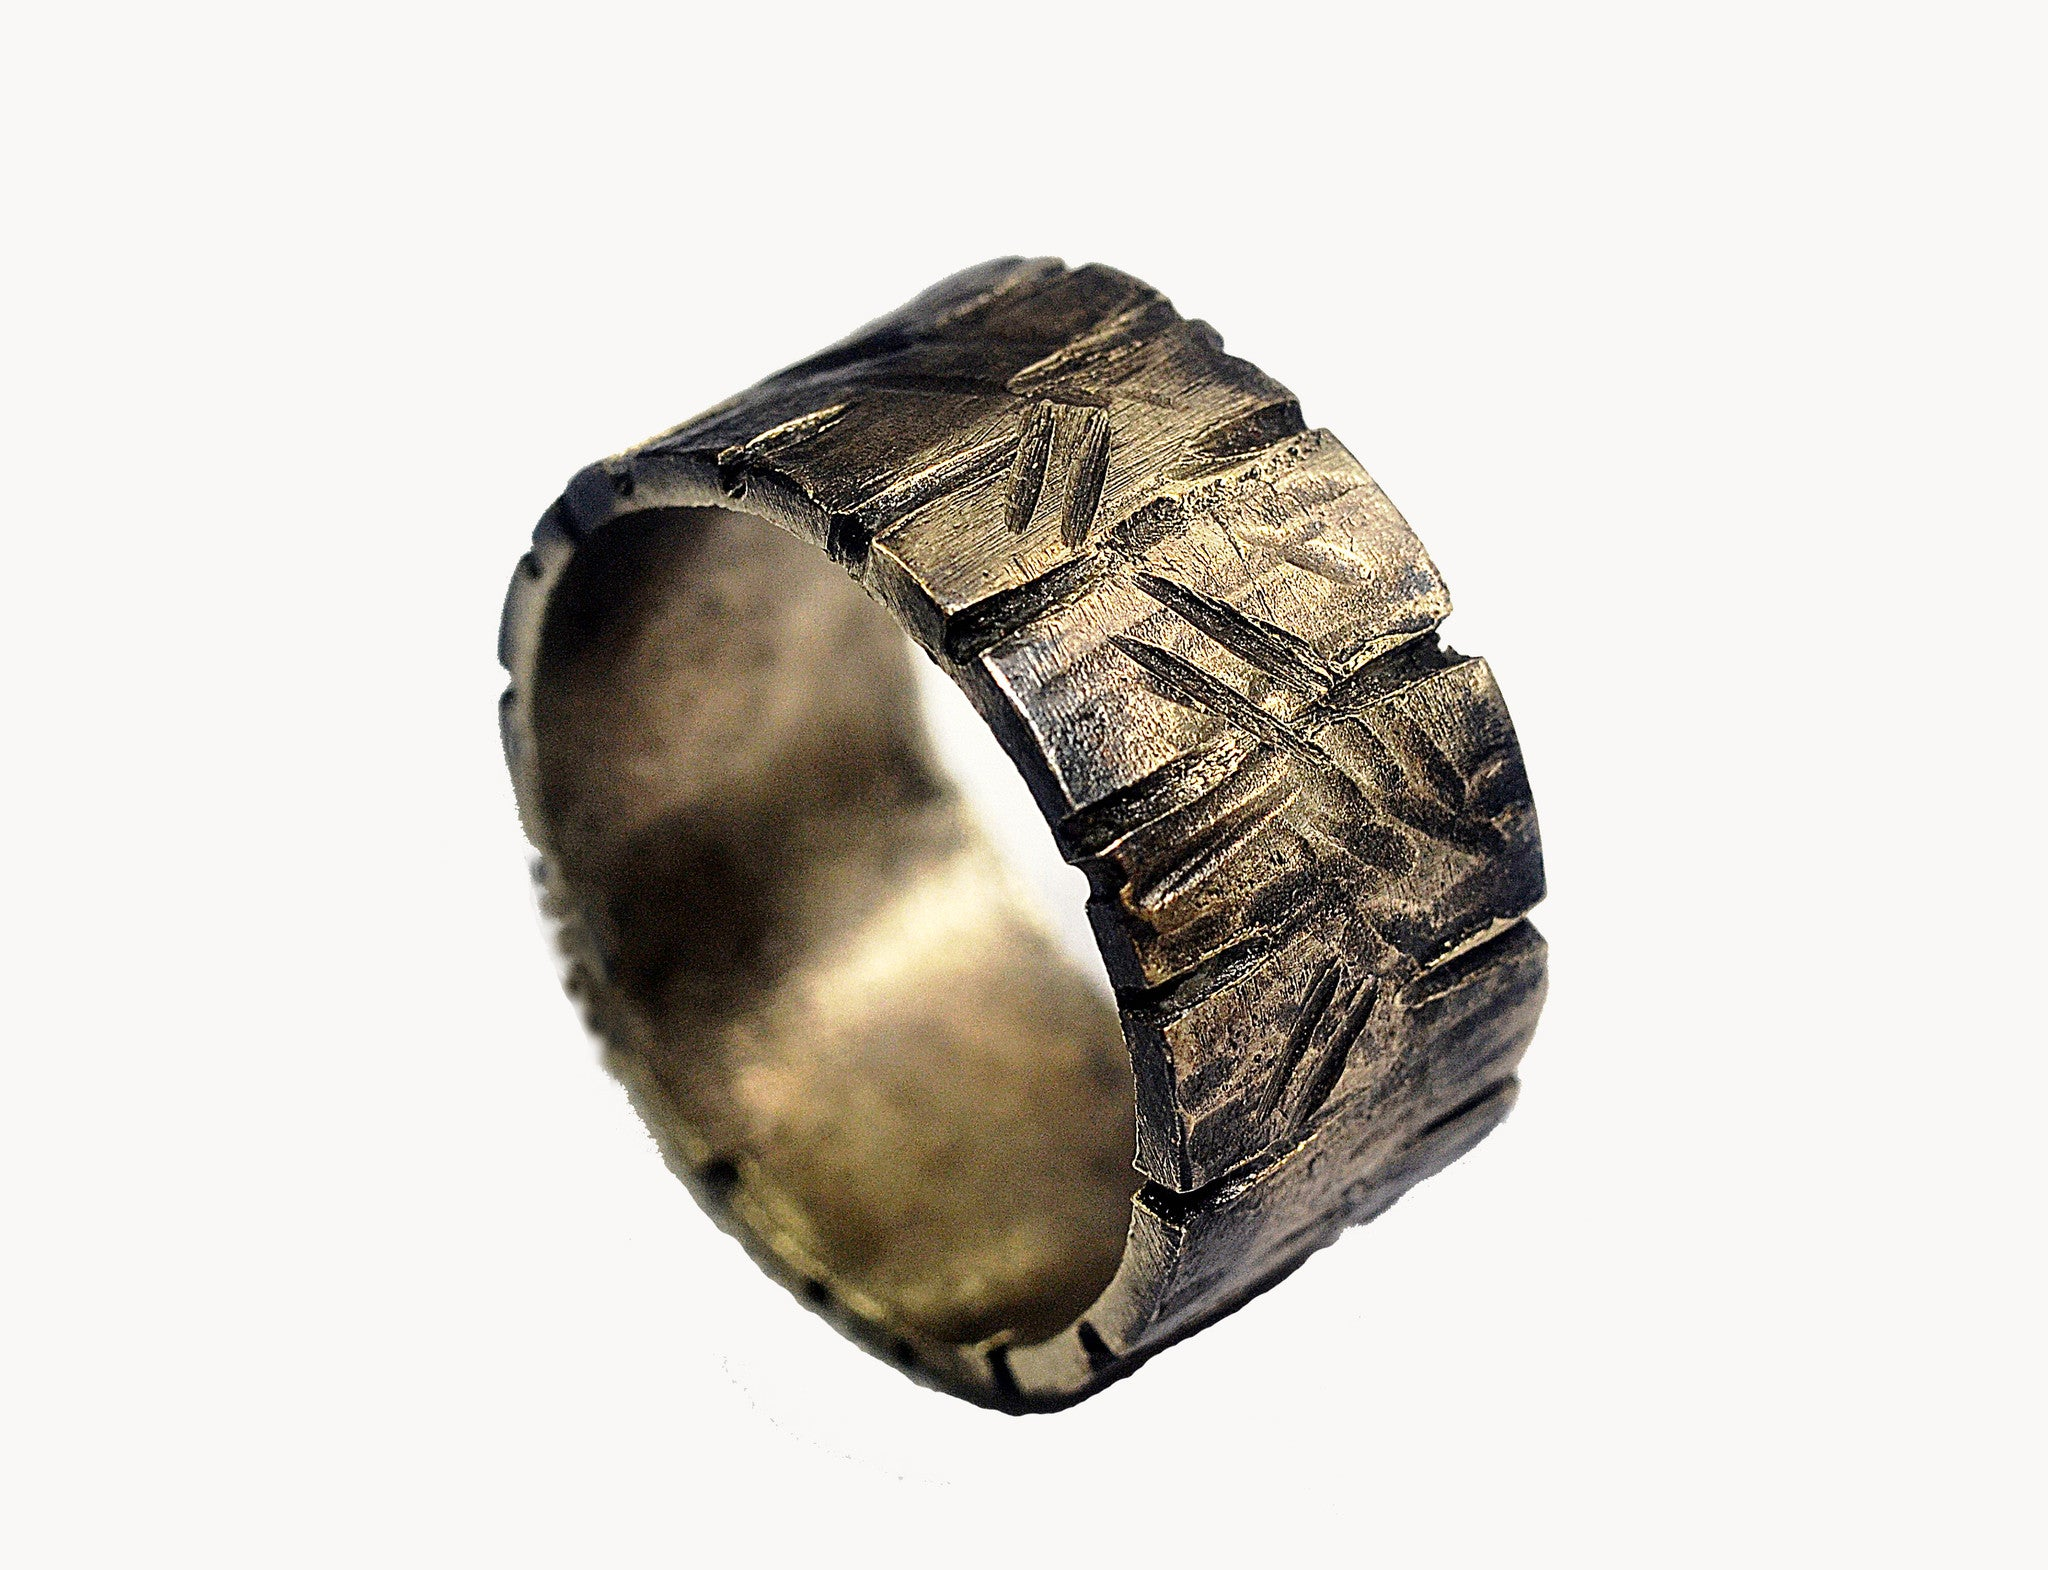 b3cc3b968cf9f Custom Distressed Silver Ring- Unisex, Non-Traditional Silver Wedding Ring  - 3/8' Silver Ring Band, Darkened Silver, Rustic